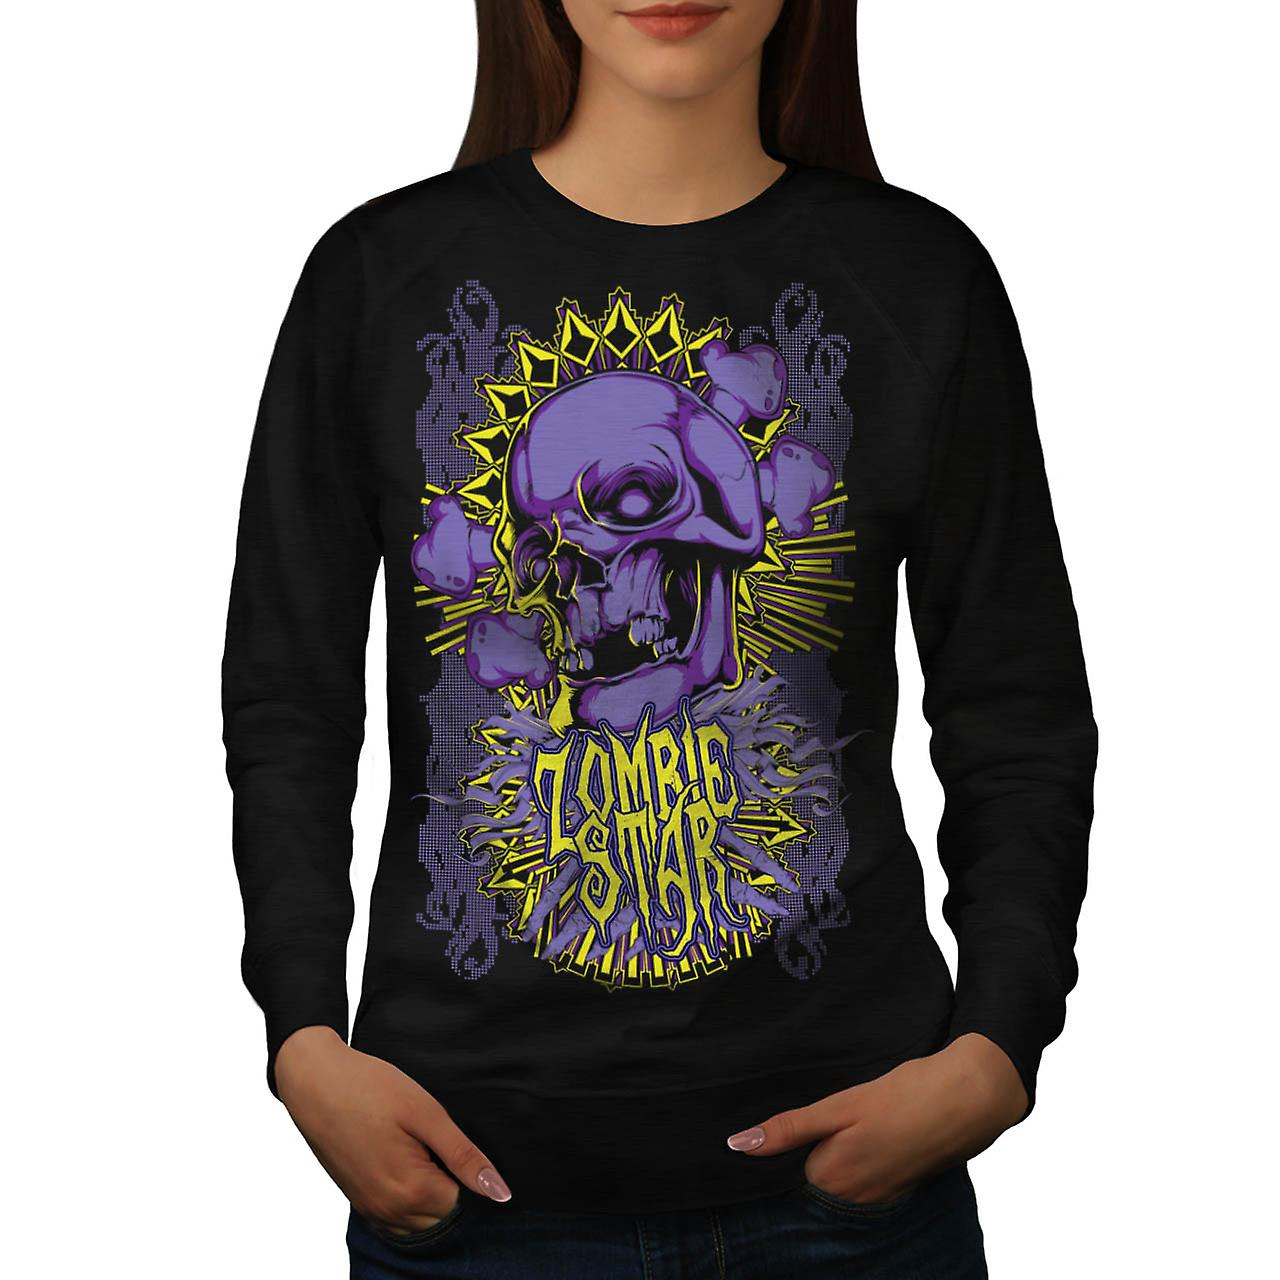 Monster Zombie Star Devils Zone Women Black Sweatshirt | Wellcoda